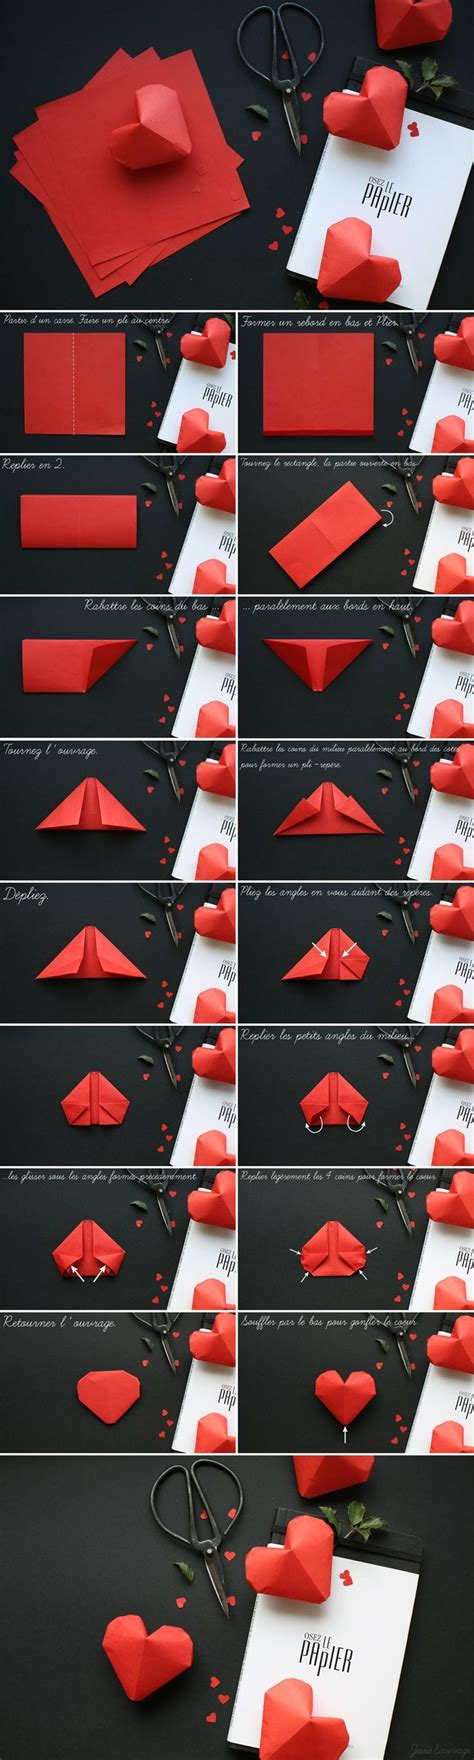 Origami 3d Hearts - diy paper hearts pictures photos and images for